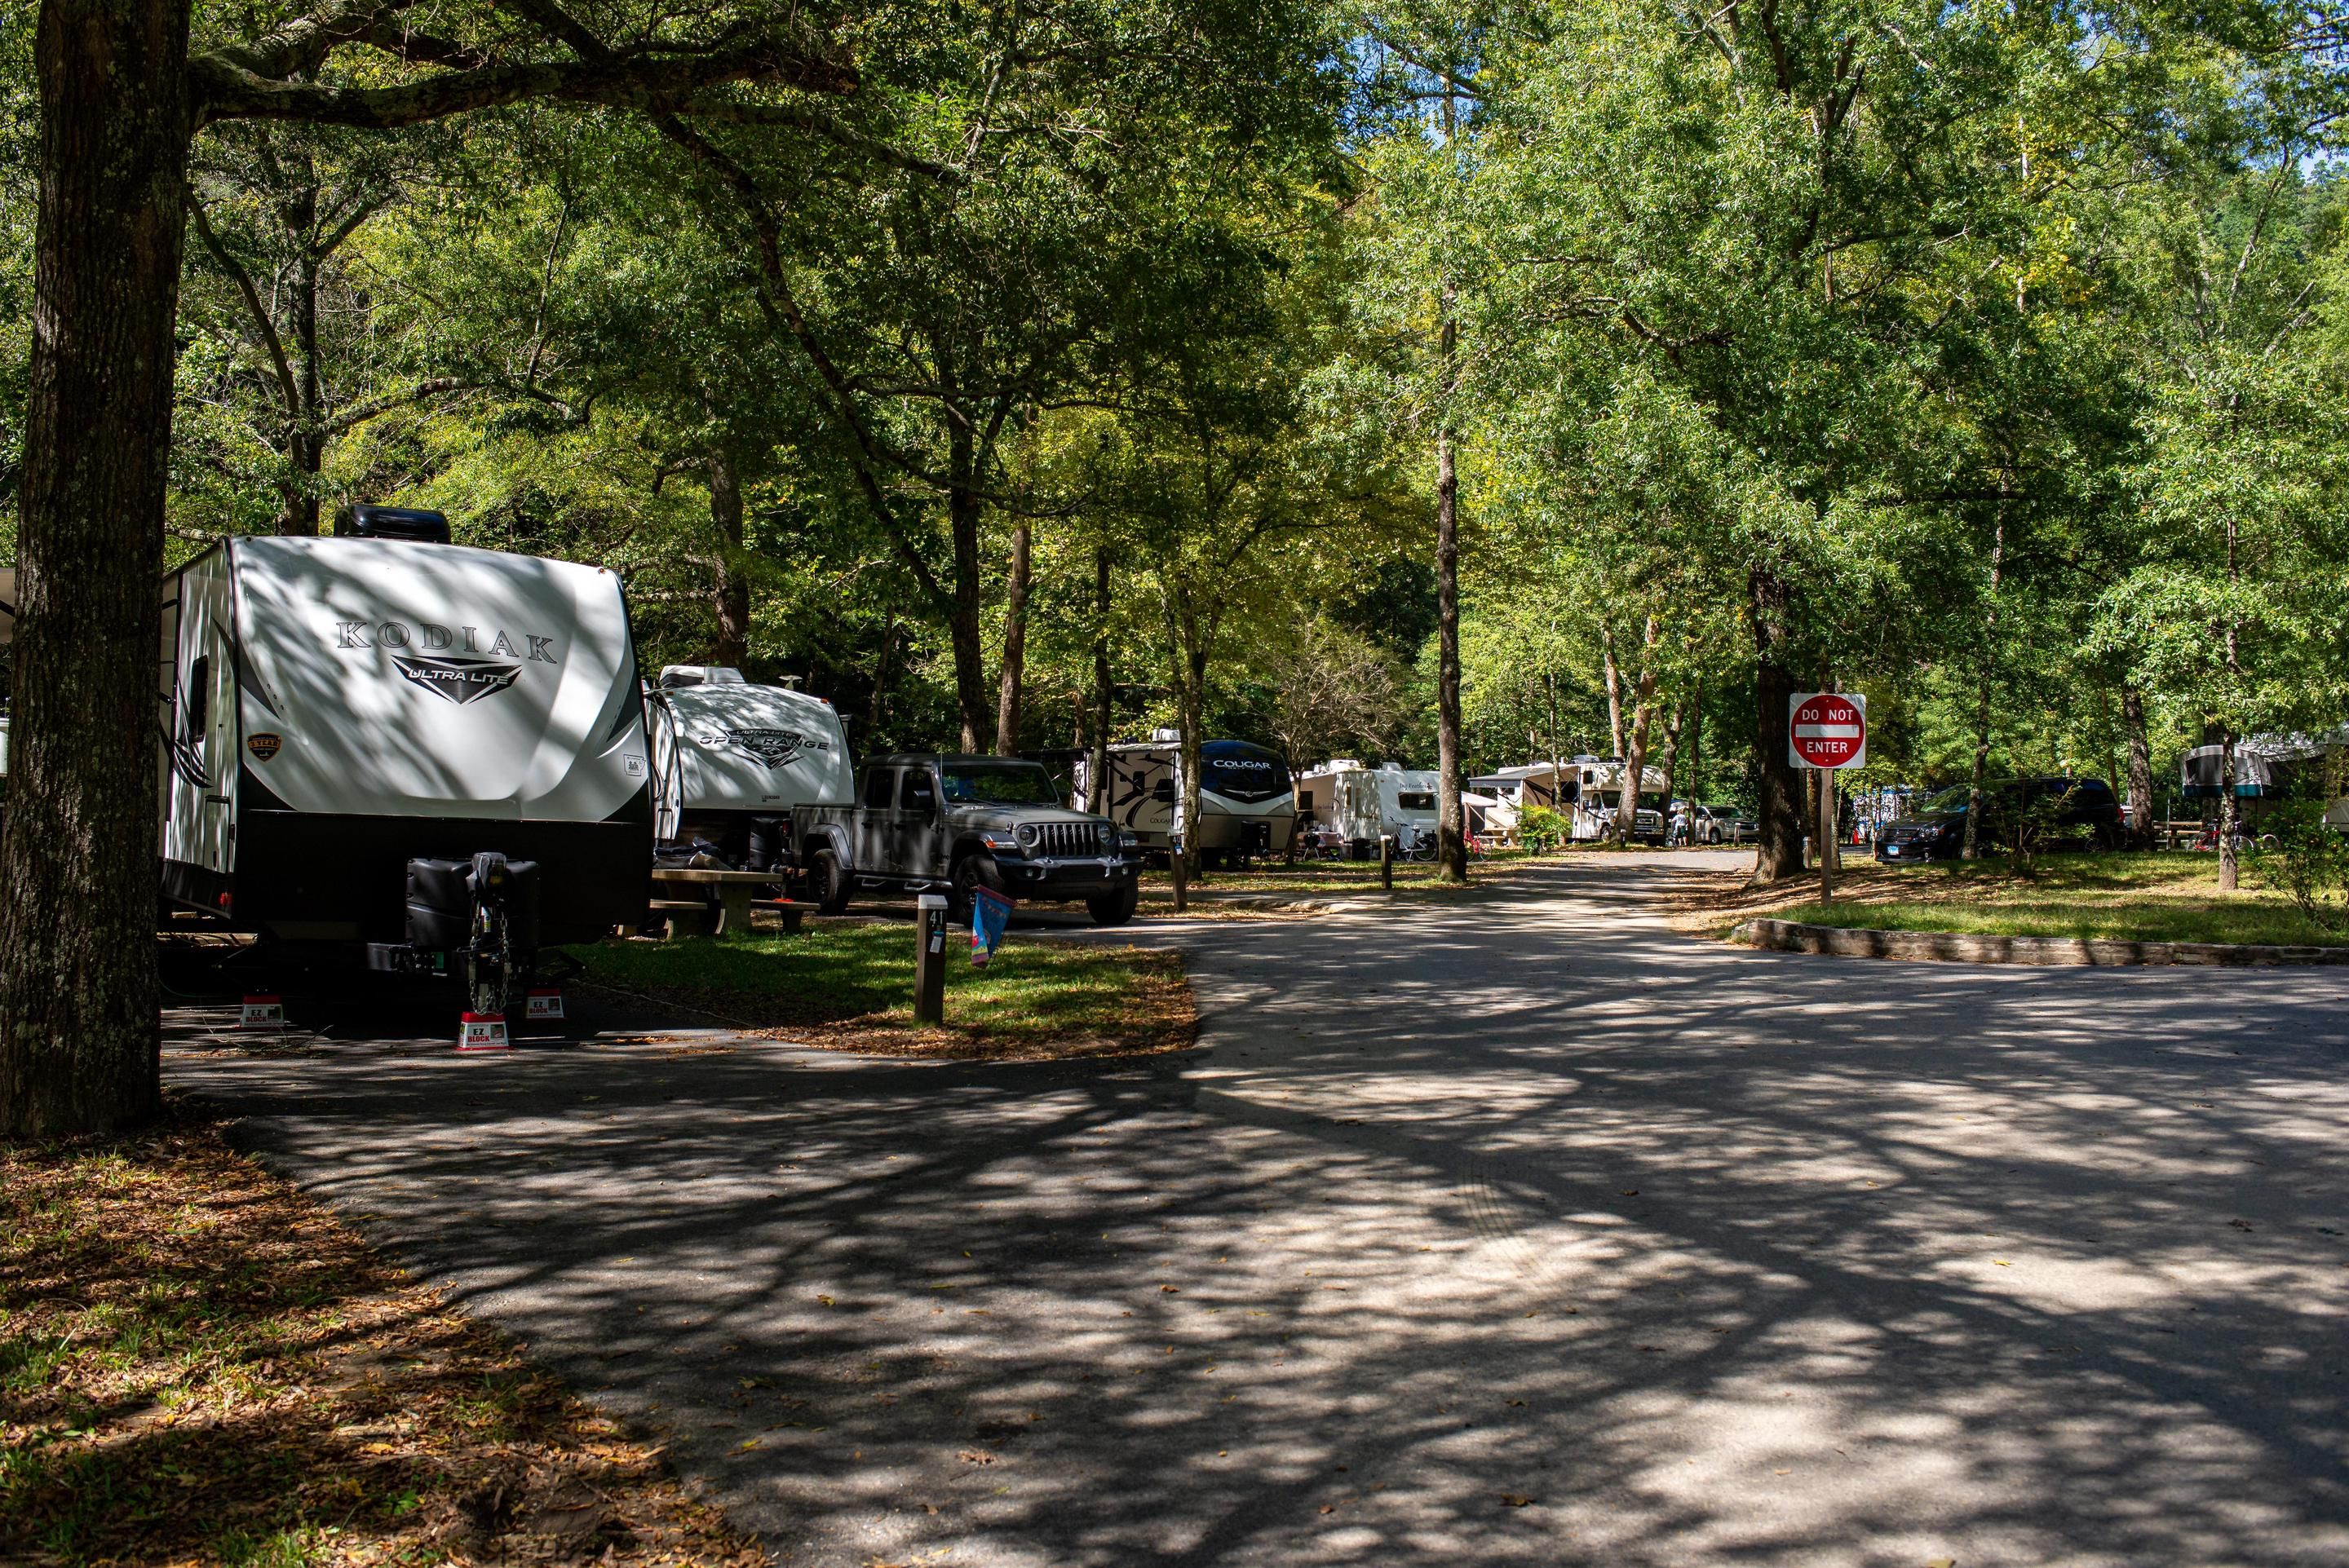 CampersPark your RV next to the river